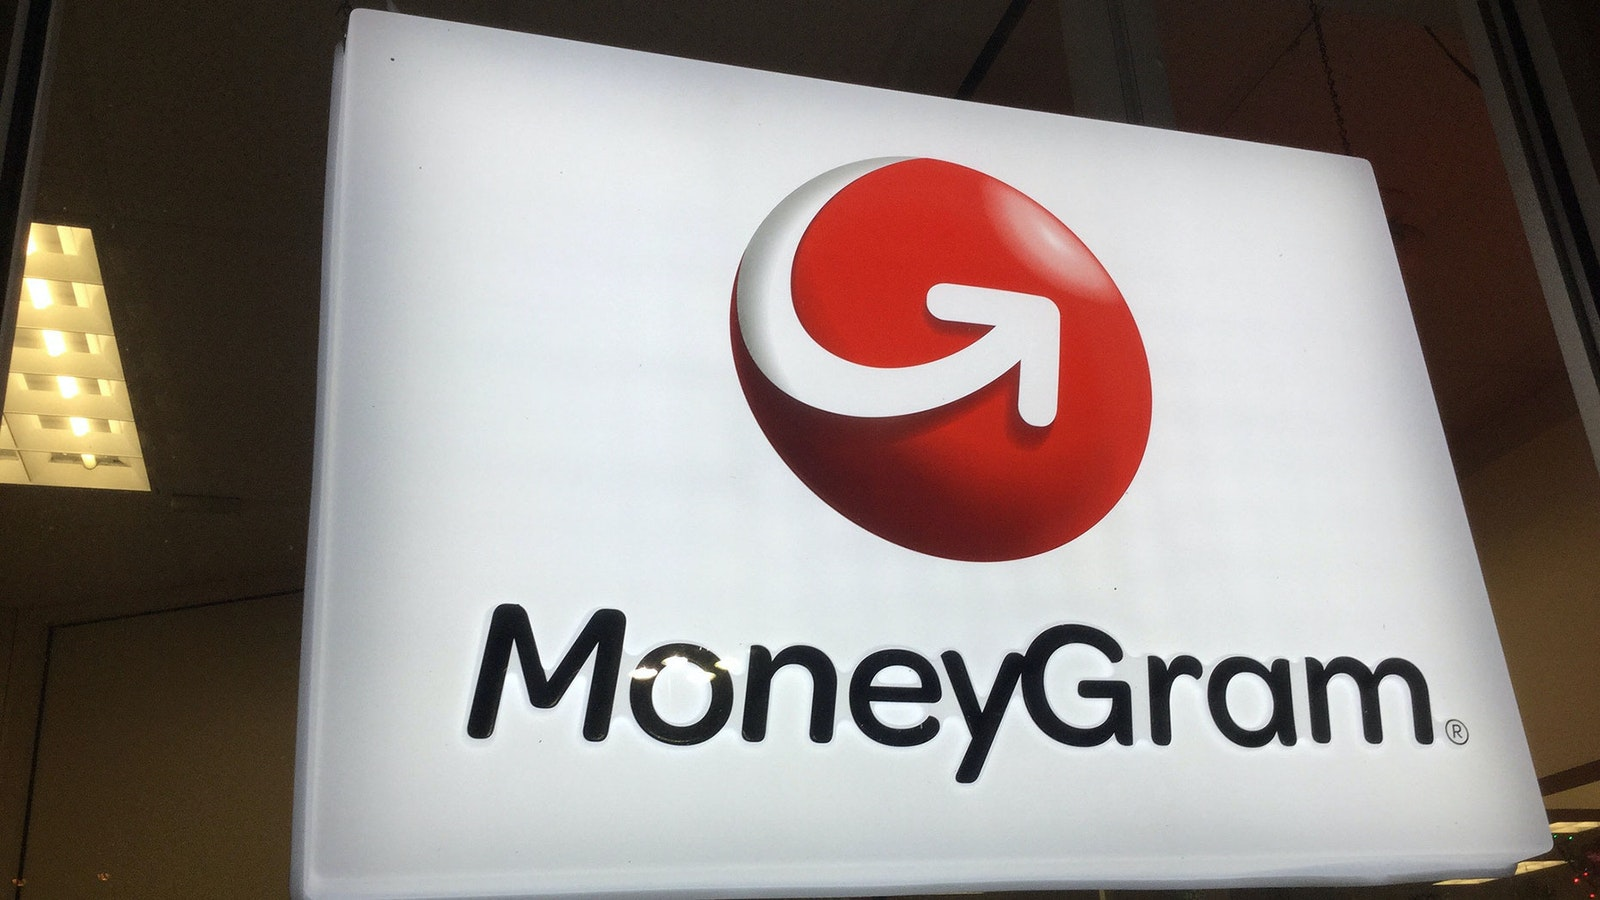 Ant Financial's proposed acquisition of MoneyGram has run into resistance from U.S. authorities. Photo: Mike Mozart/Flickr